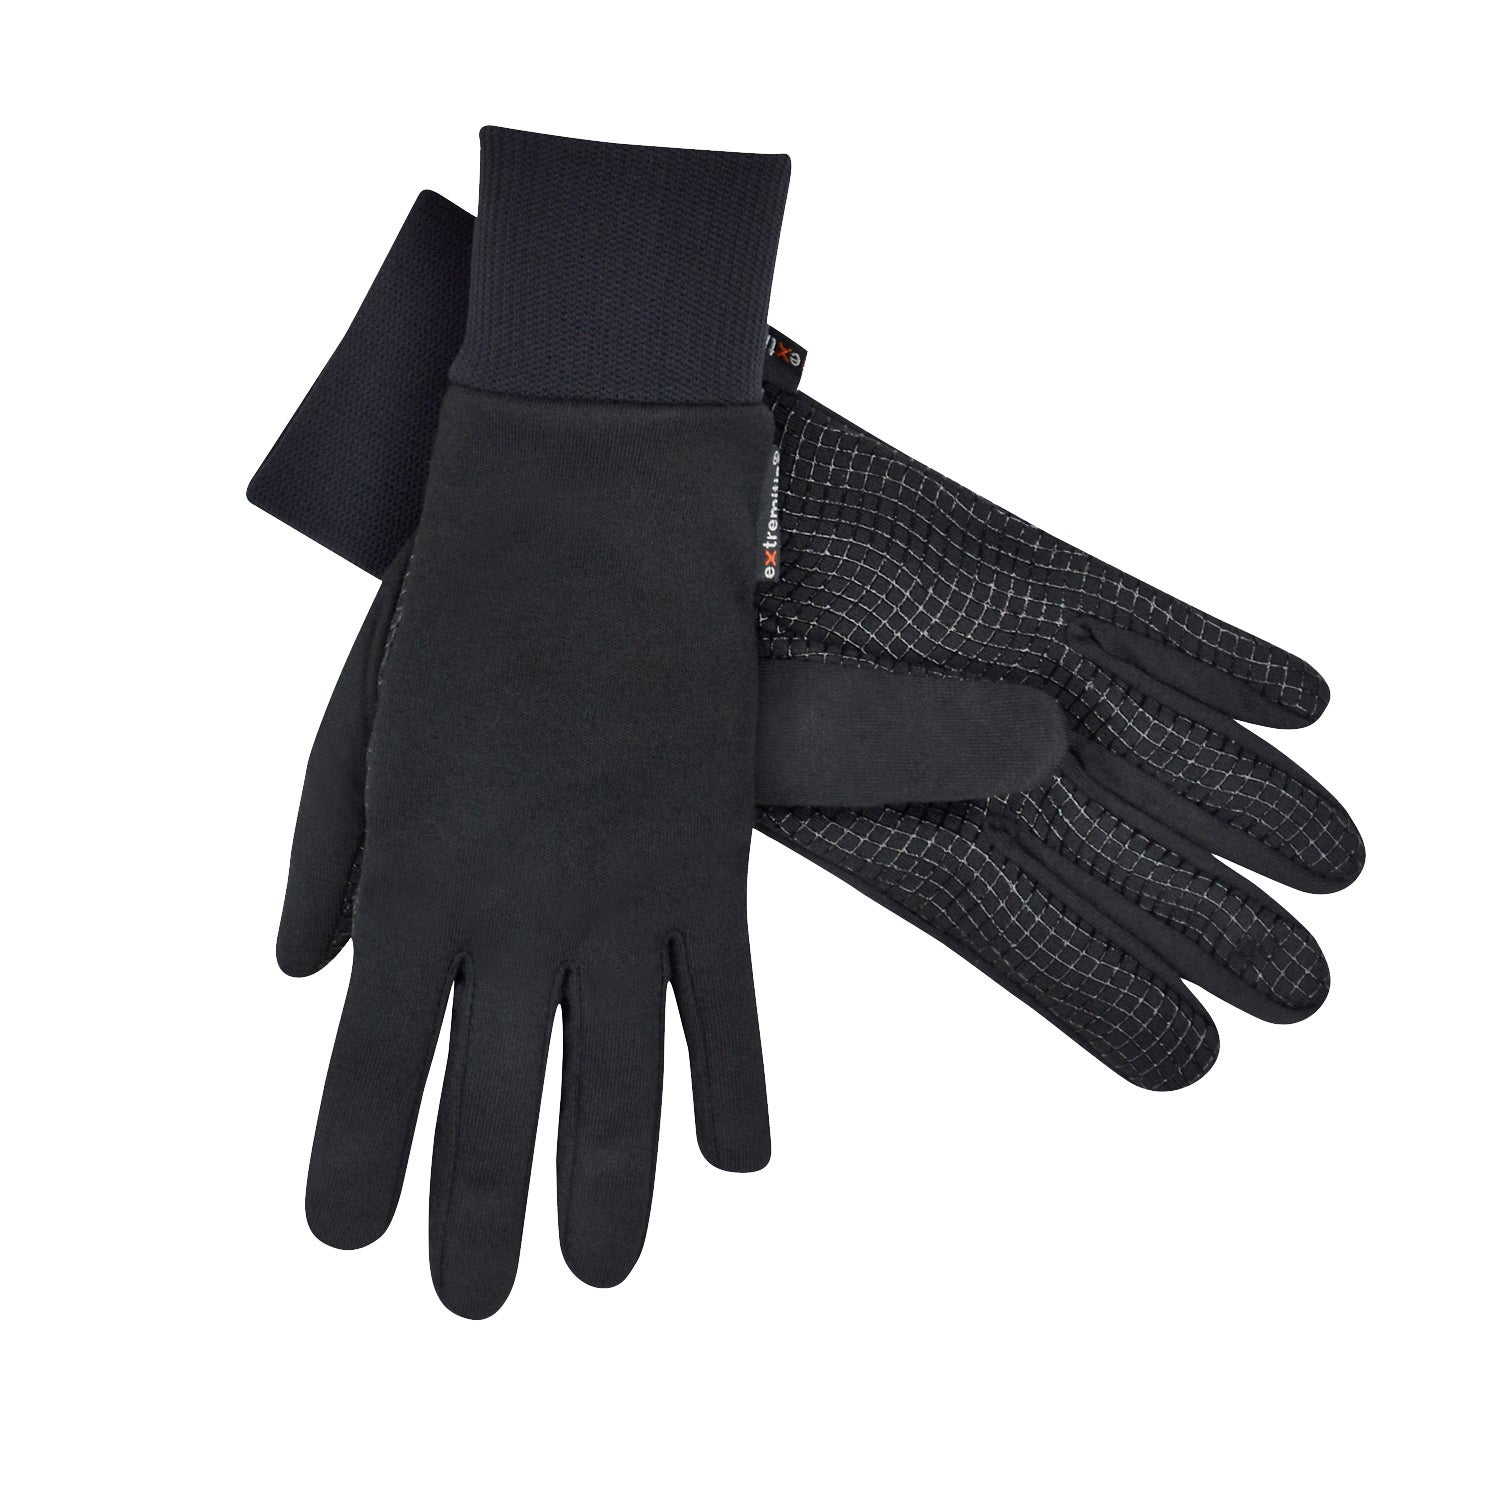 Extremities Waterproof Sticky Powerliner Gloves